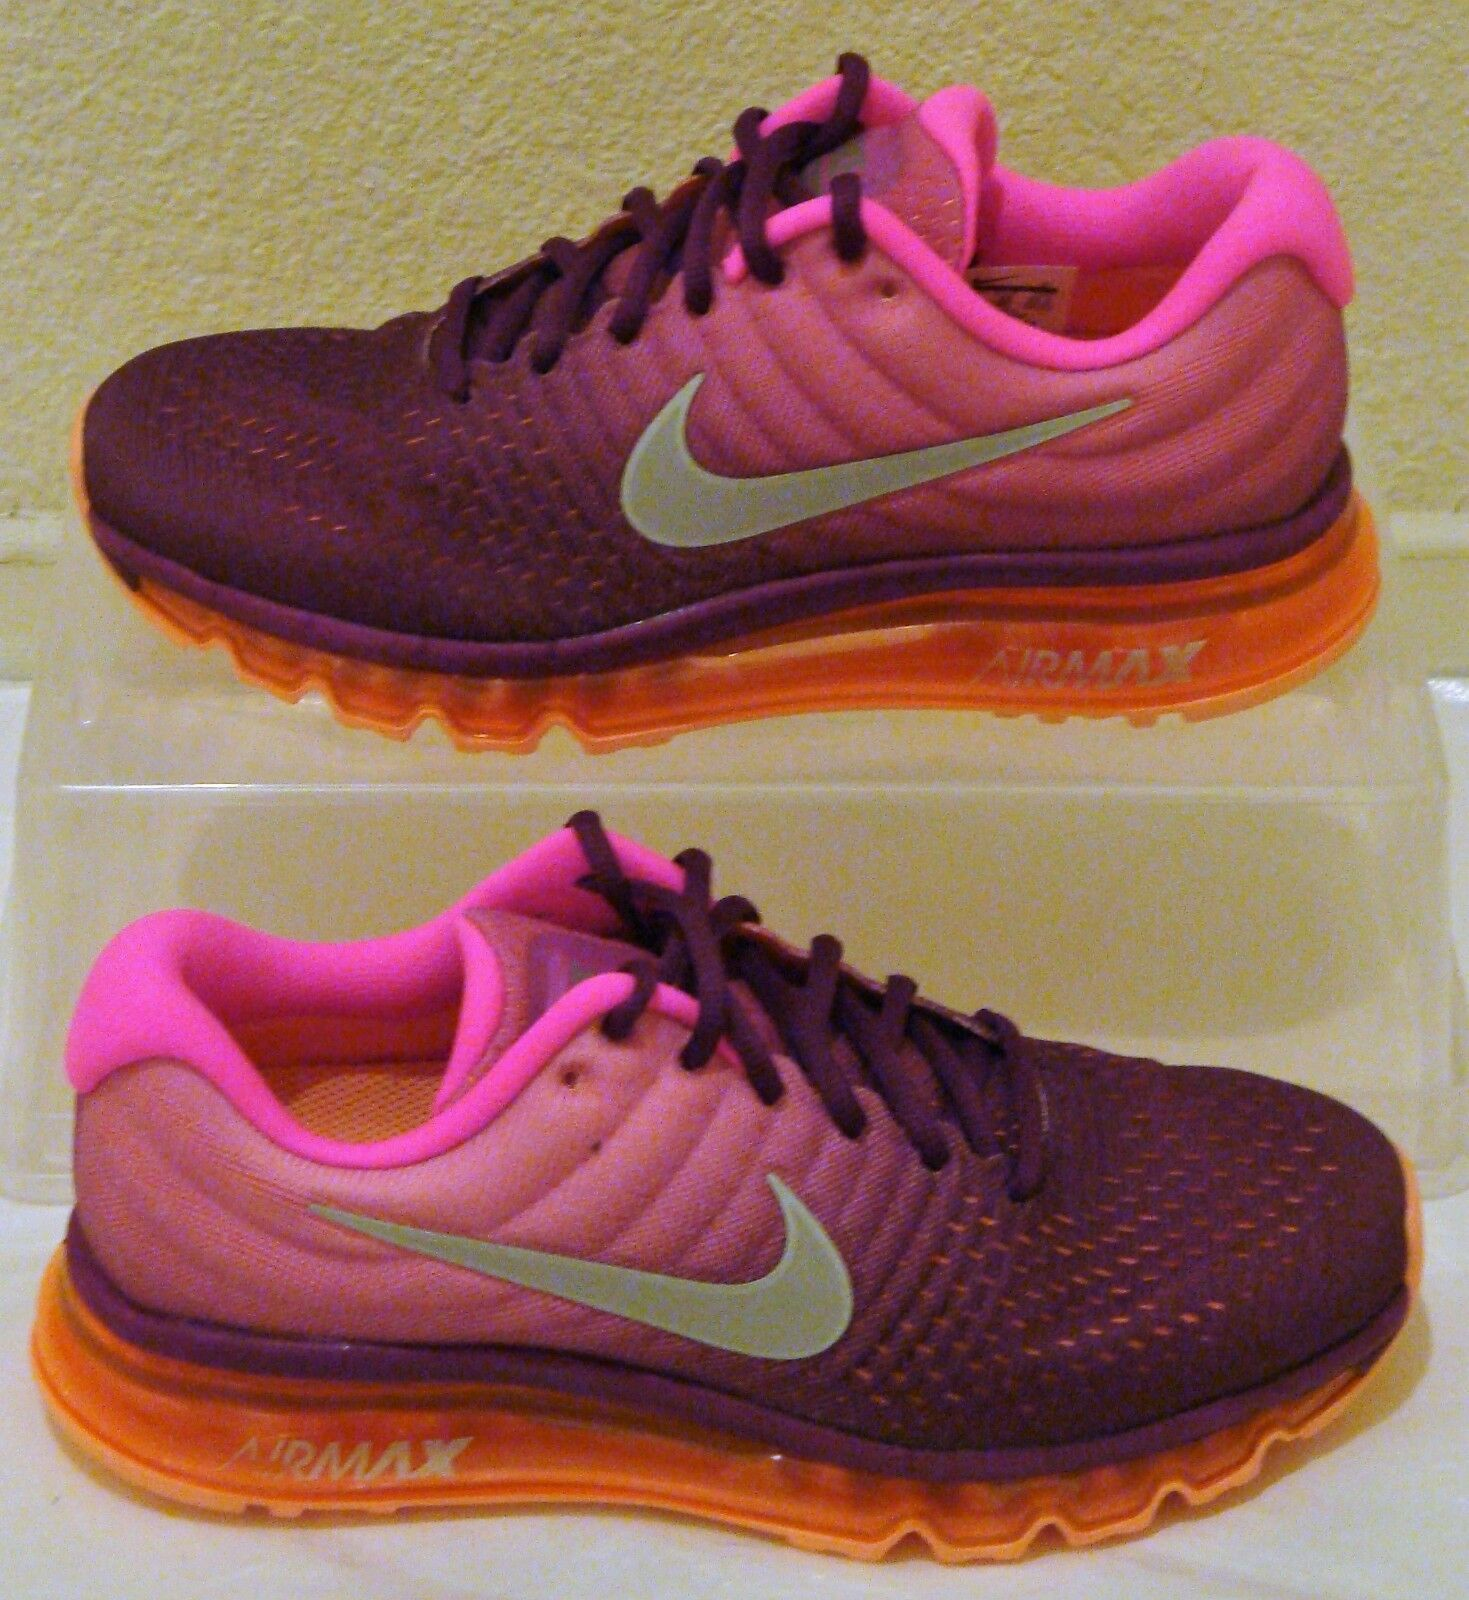 New Nike Air Max 2017 Grape Pink Womens US Size 7.5